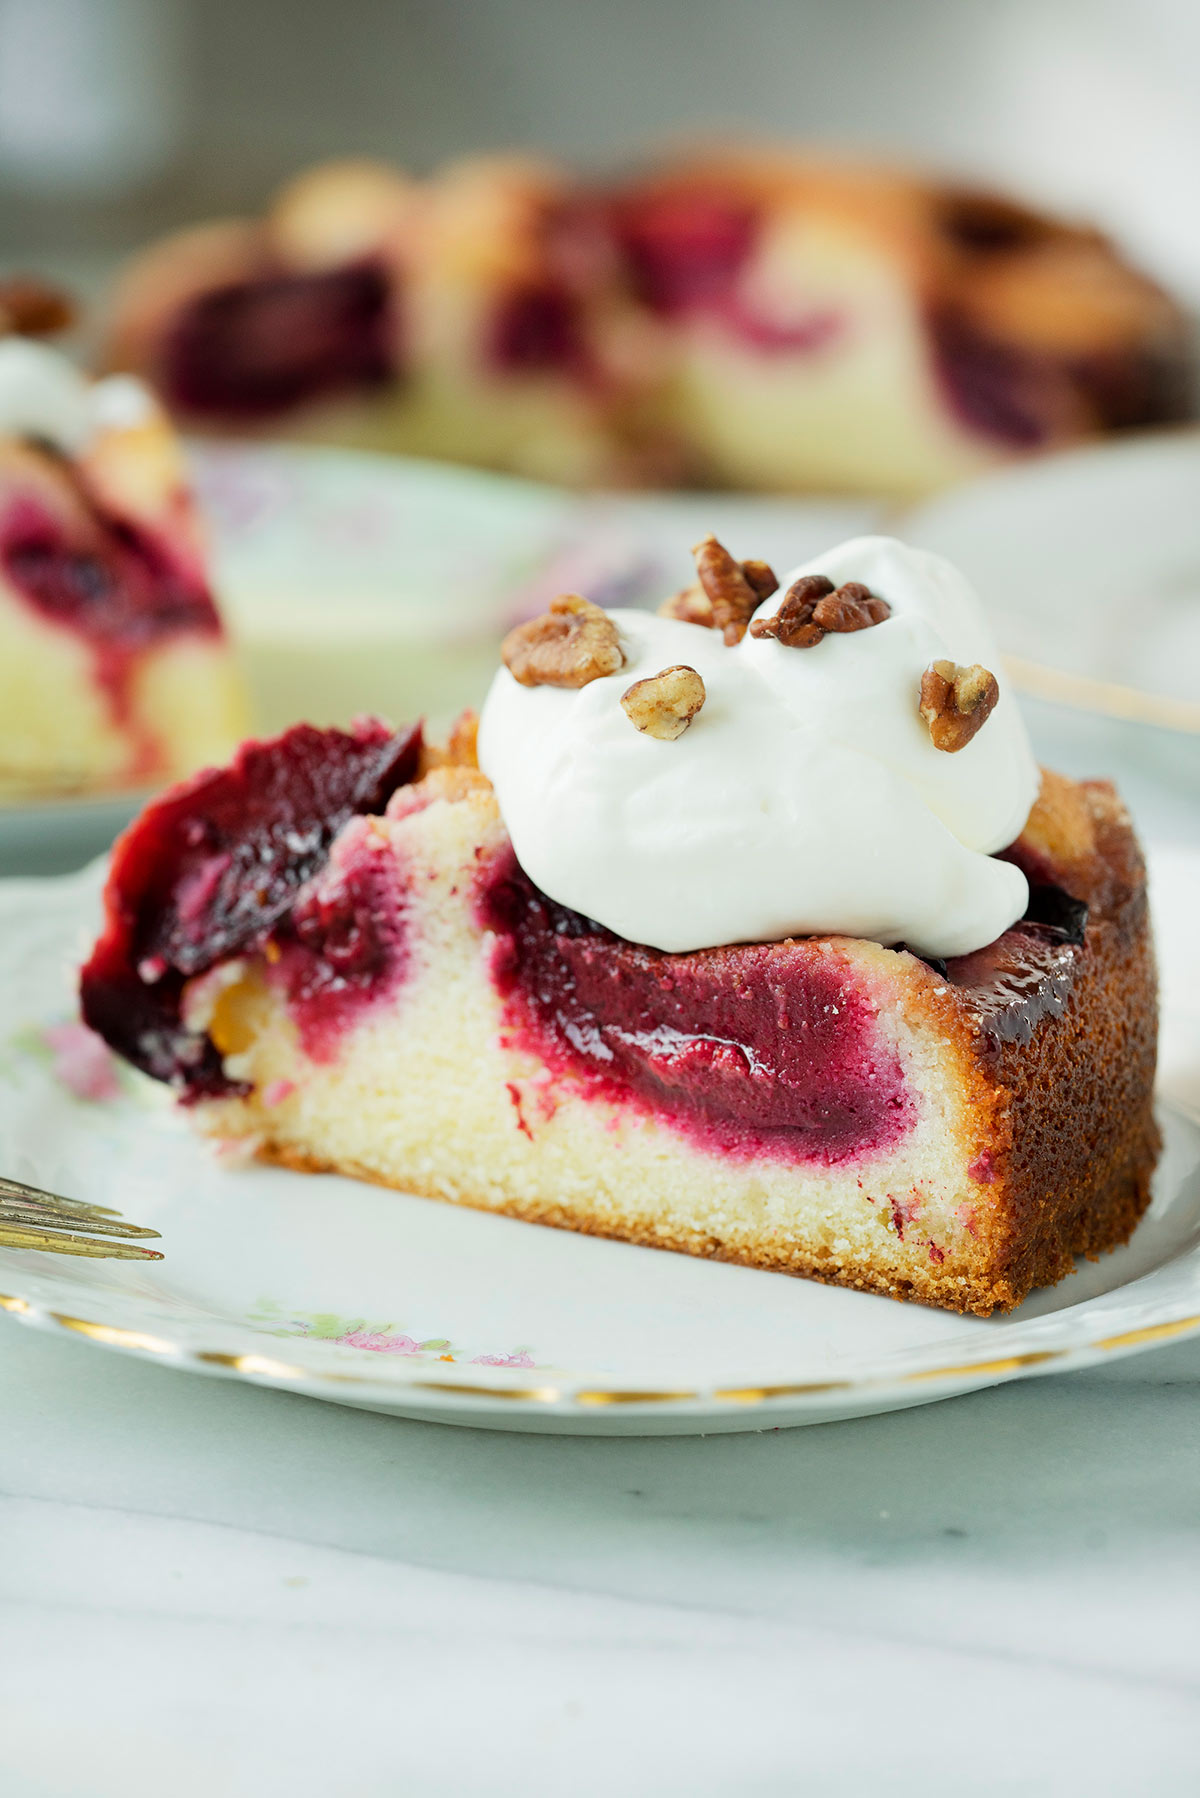 slice of plum cake with whipped cream